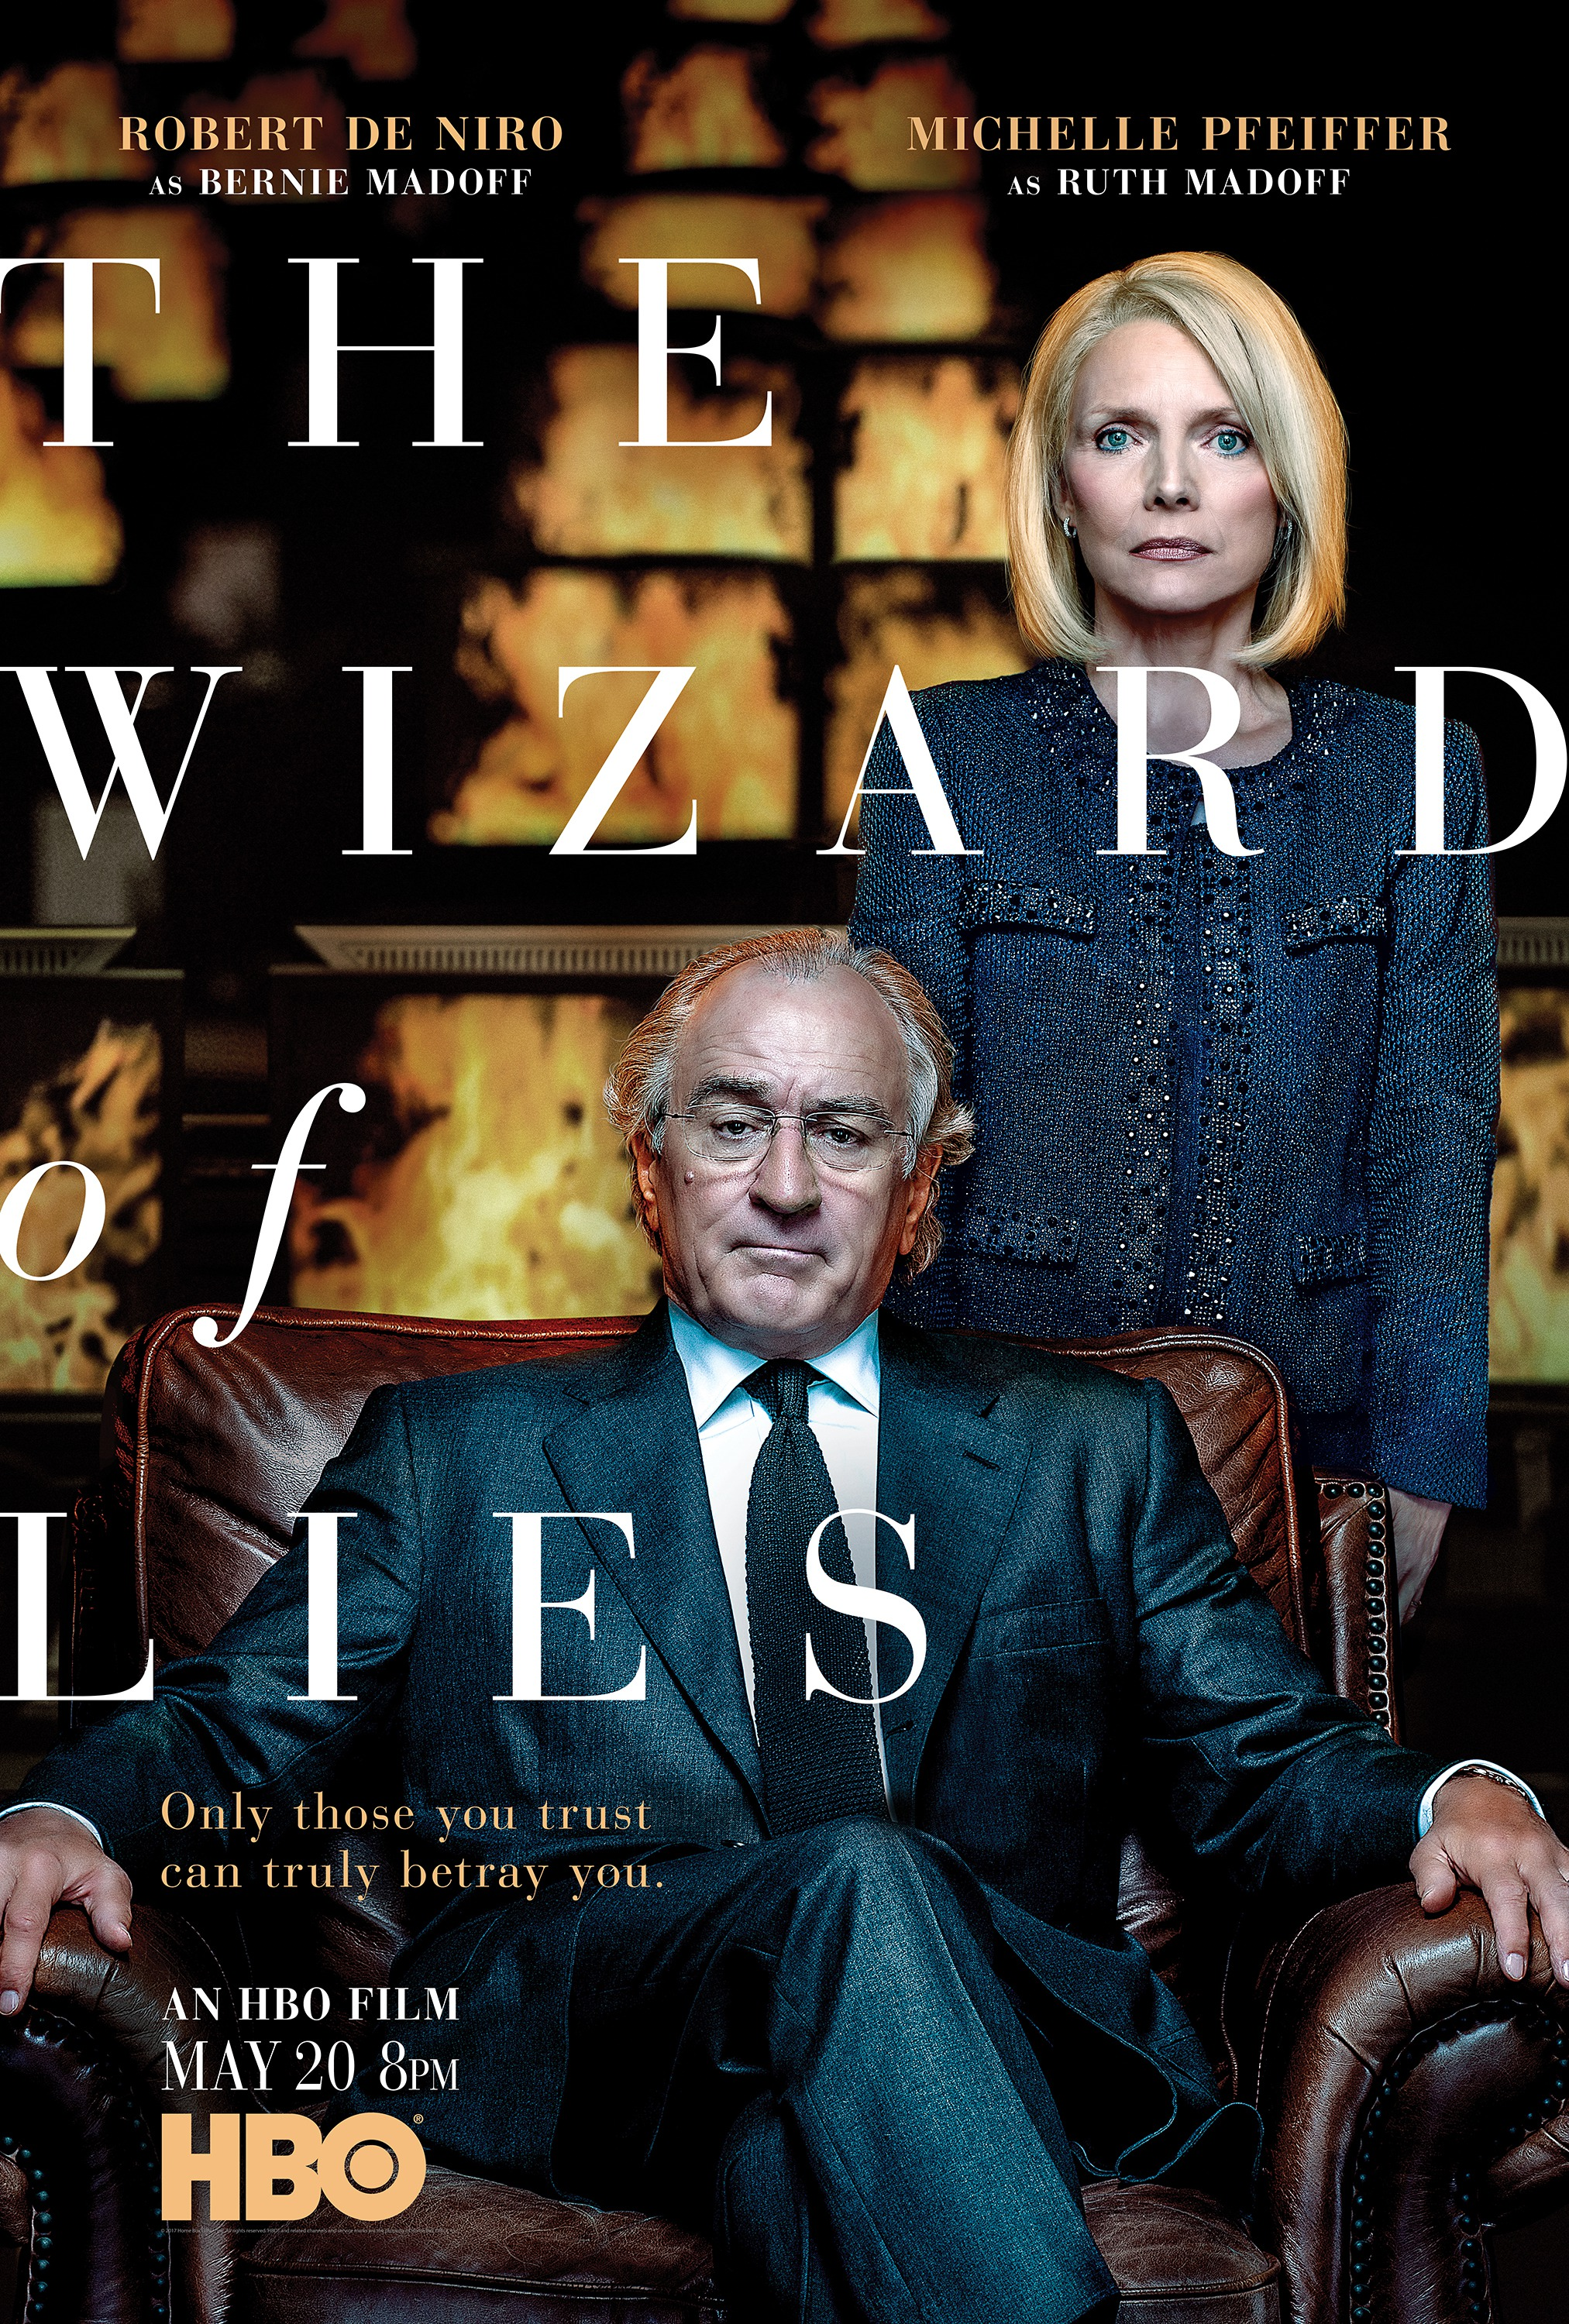 """ROBERT DENIRO AND MICHELLE PFEIFFER FOR """"THE WIZARD OF LIES"""", PRODUCED BY HBO"""